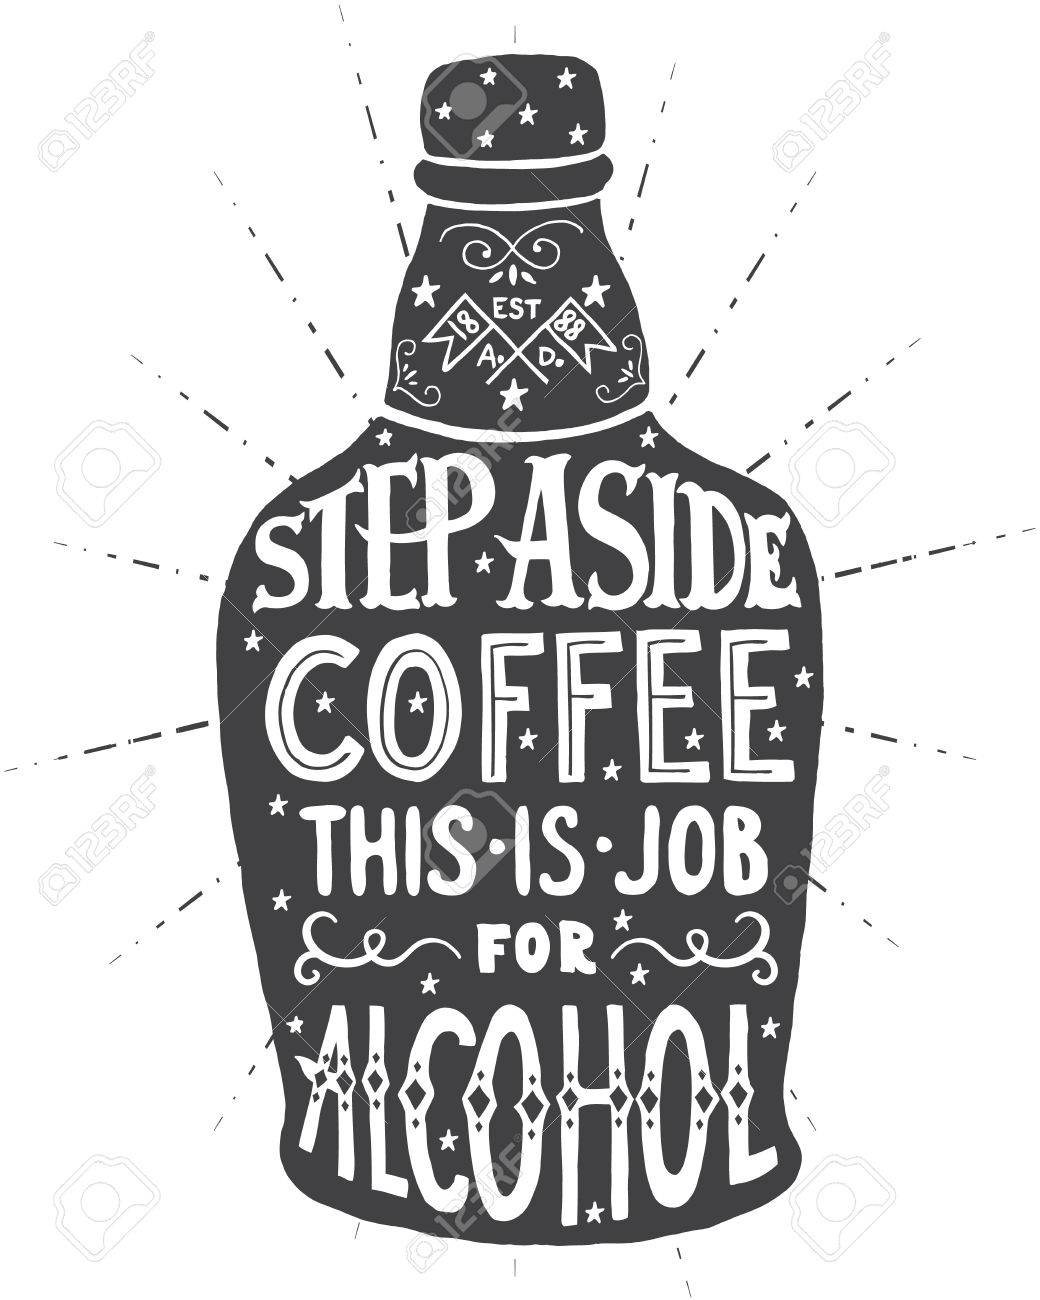 92643932b Step aside coffee this is job for alcohol. Handmade Typographic Art for  Poster Print Greeting